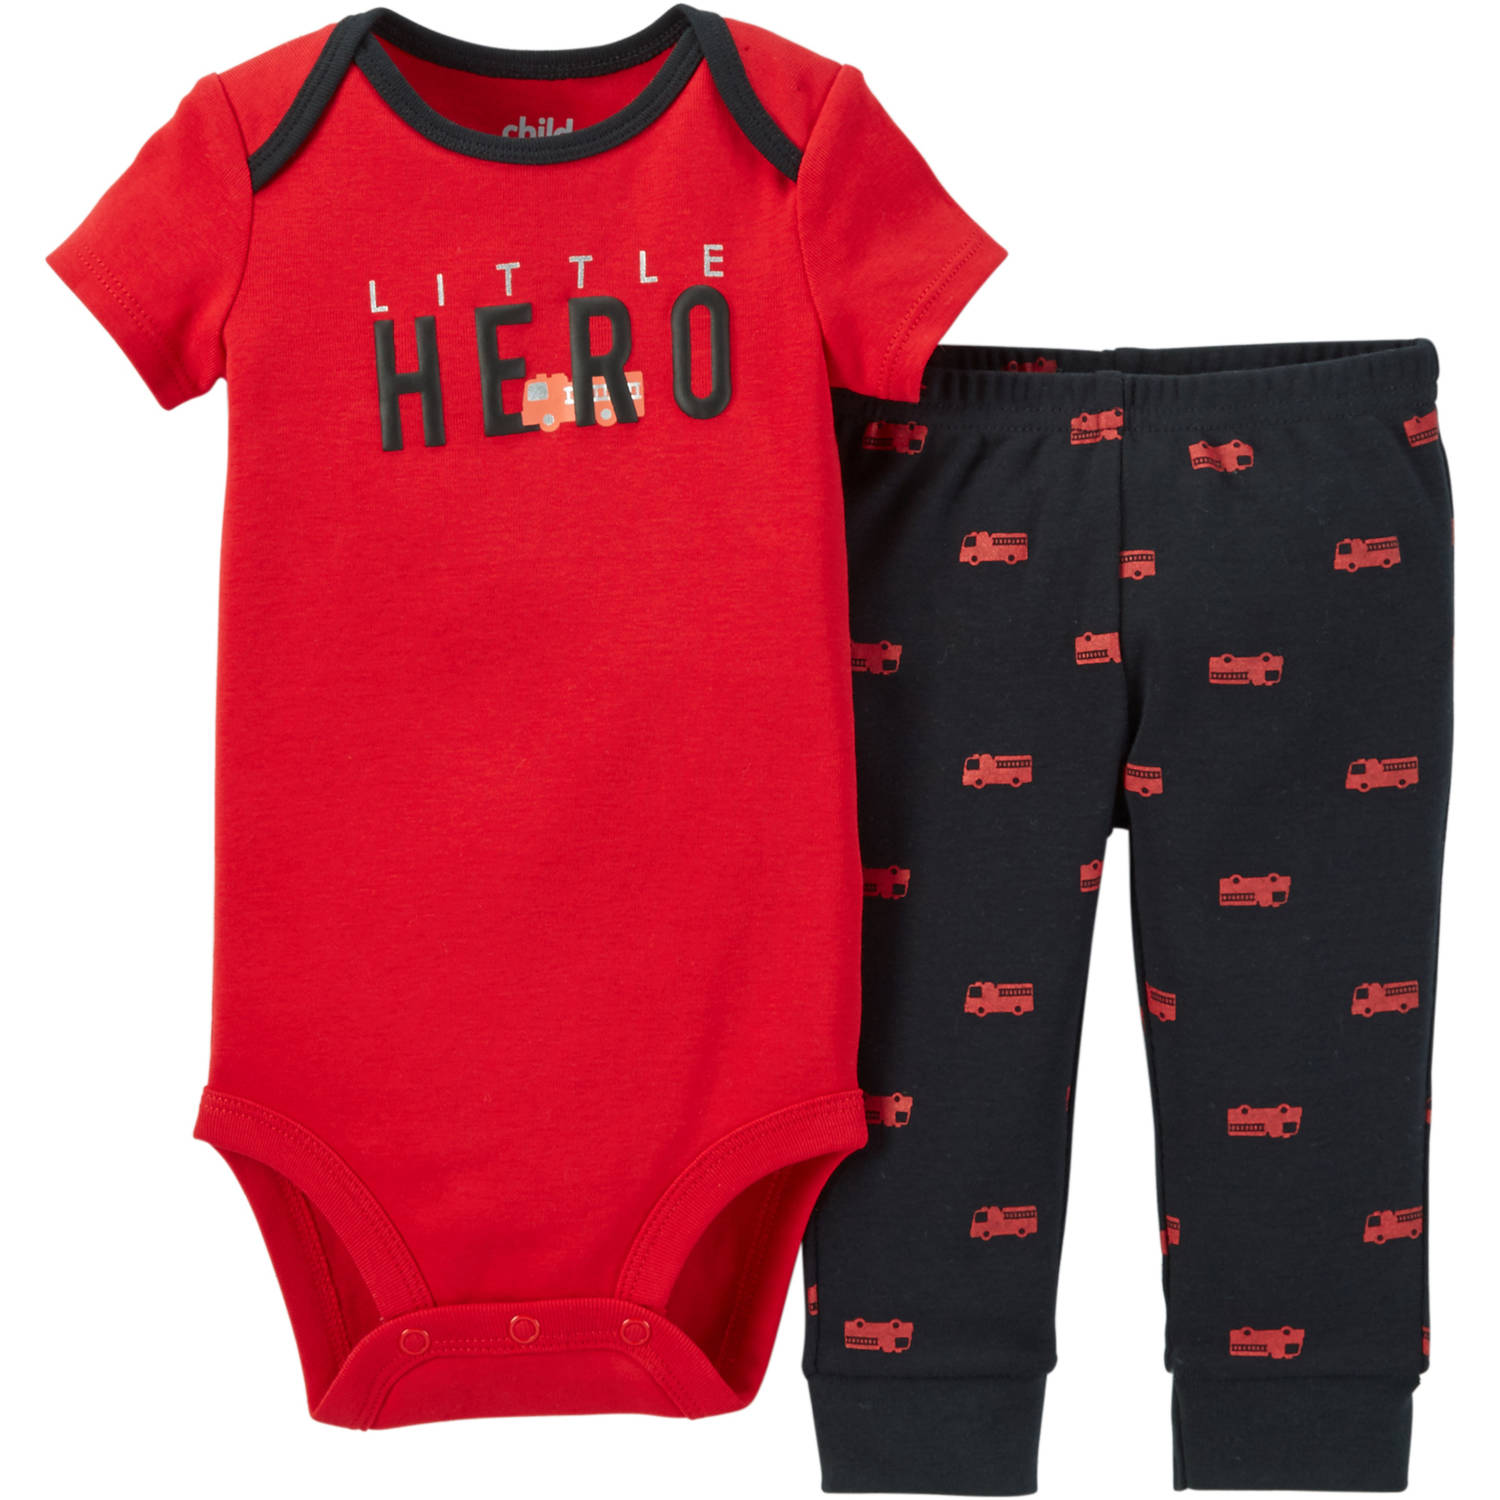 Child Of Mine Made By Carter's Newborn Baby Boy Bodysuit & Pant Outfit Set 2 Pcs